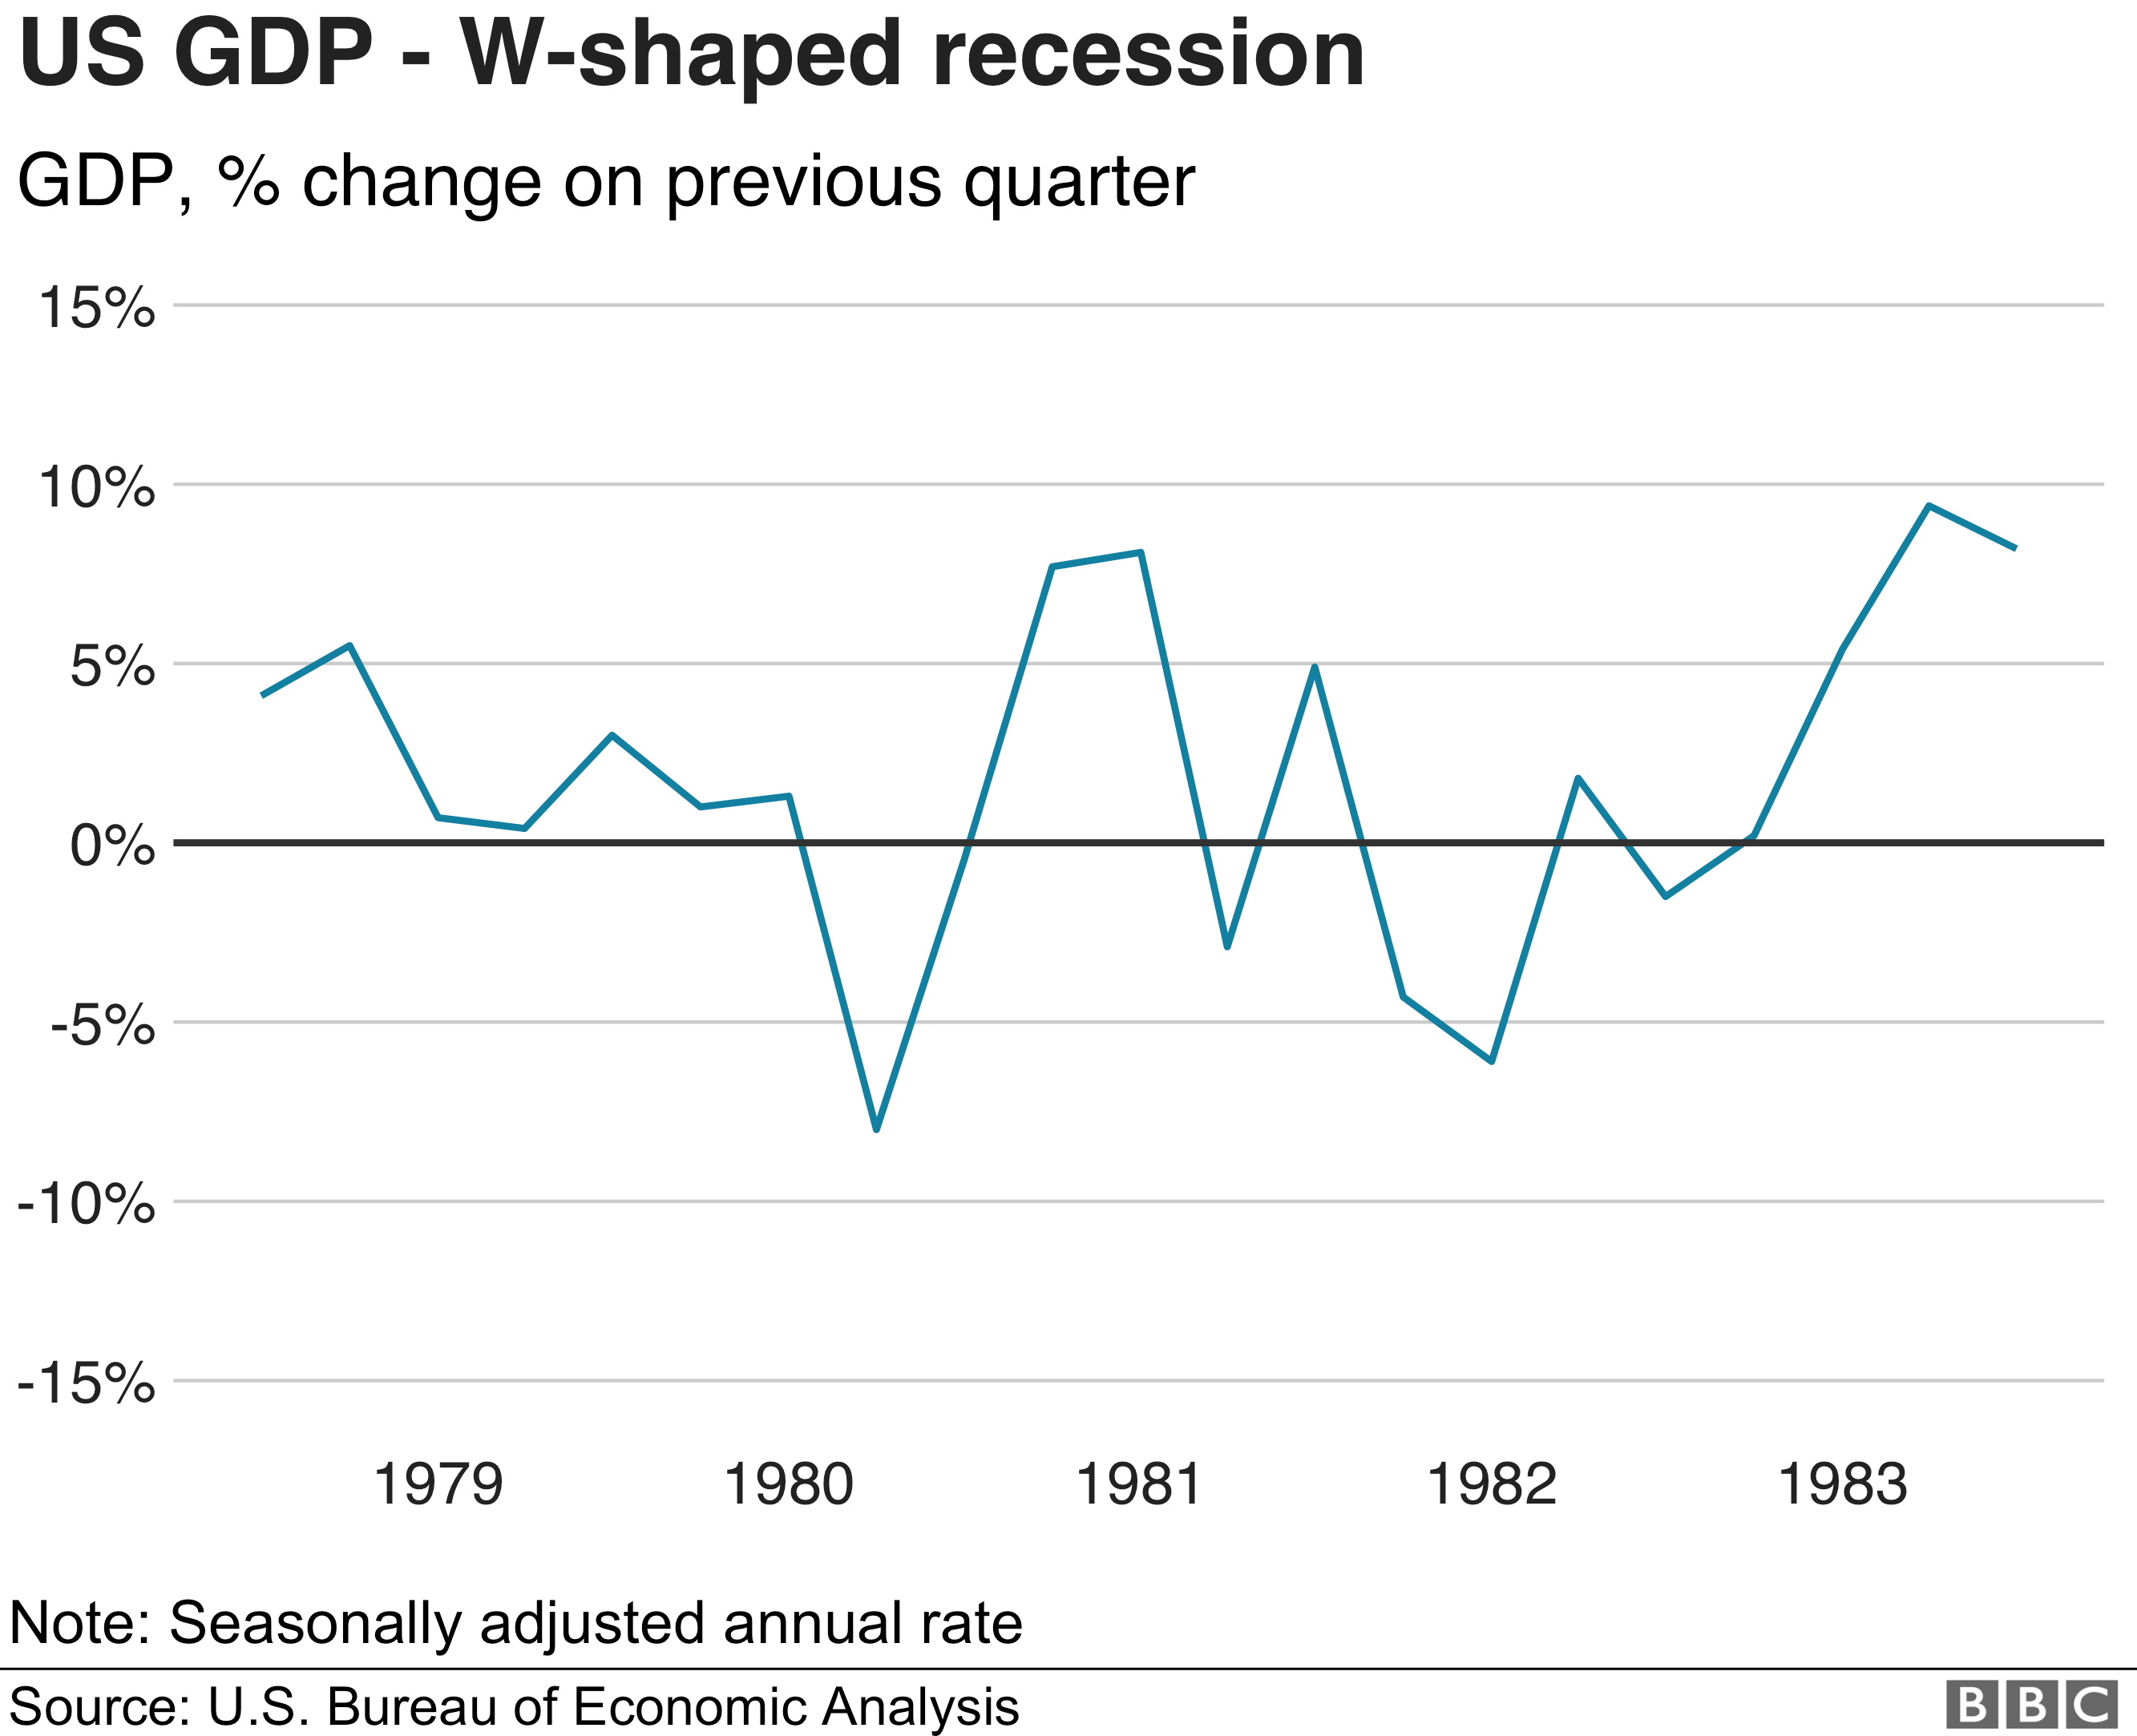 An W-shaped recovery